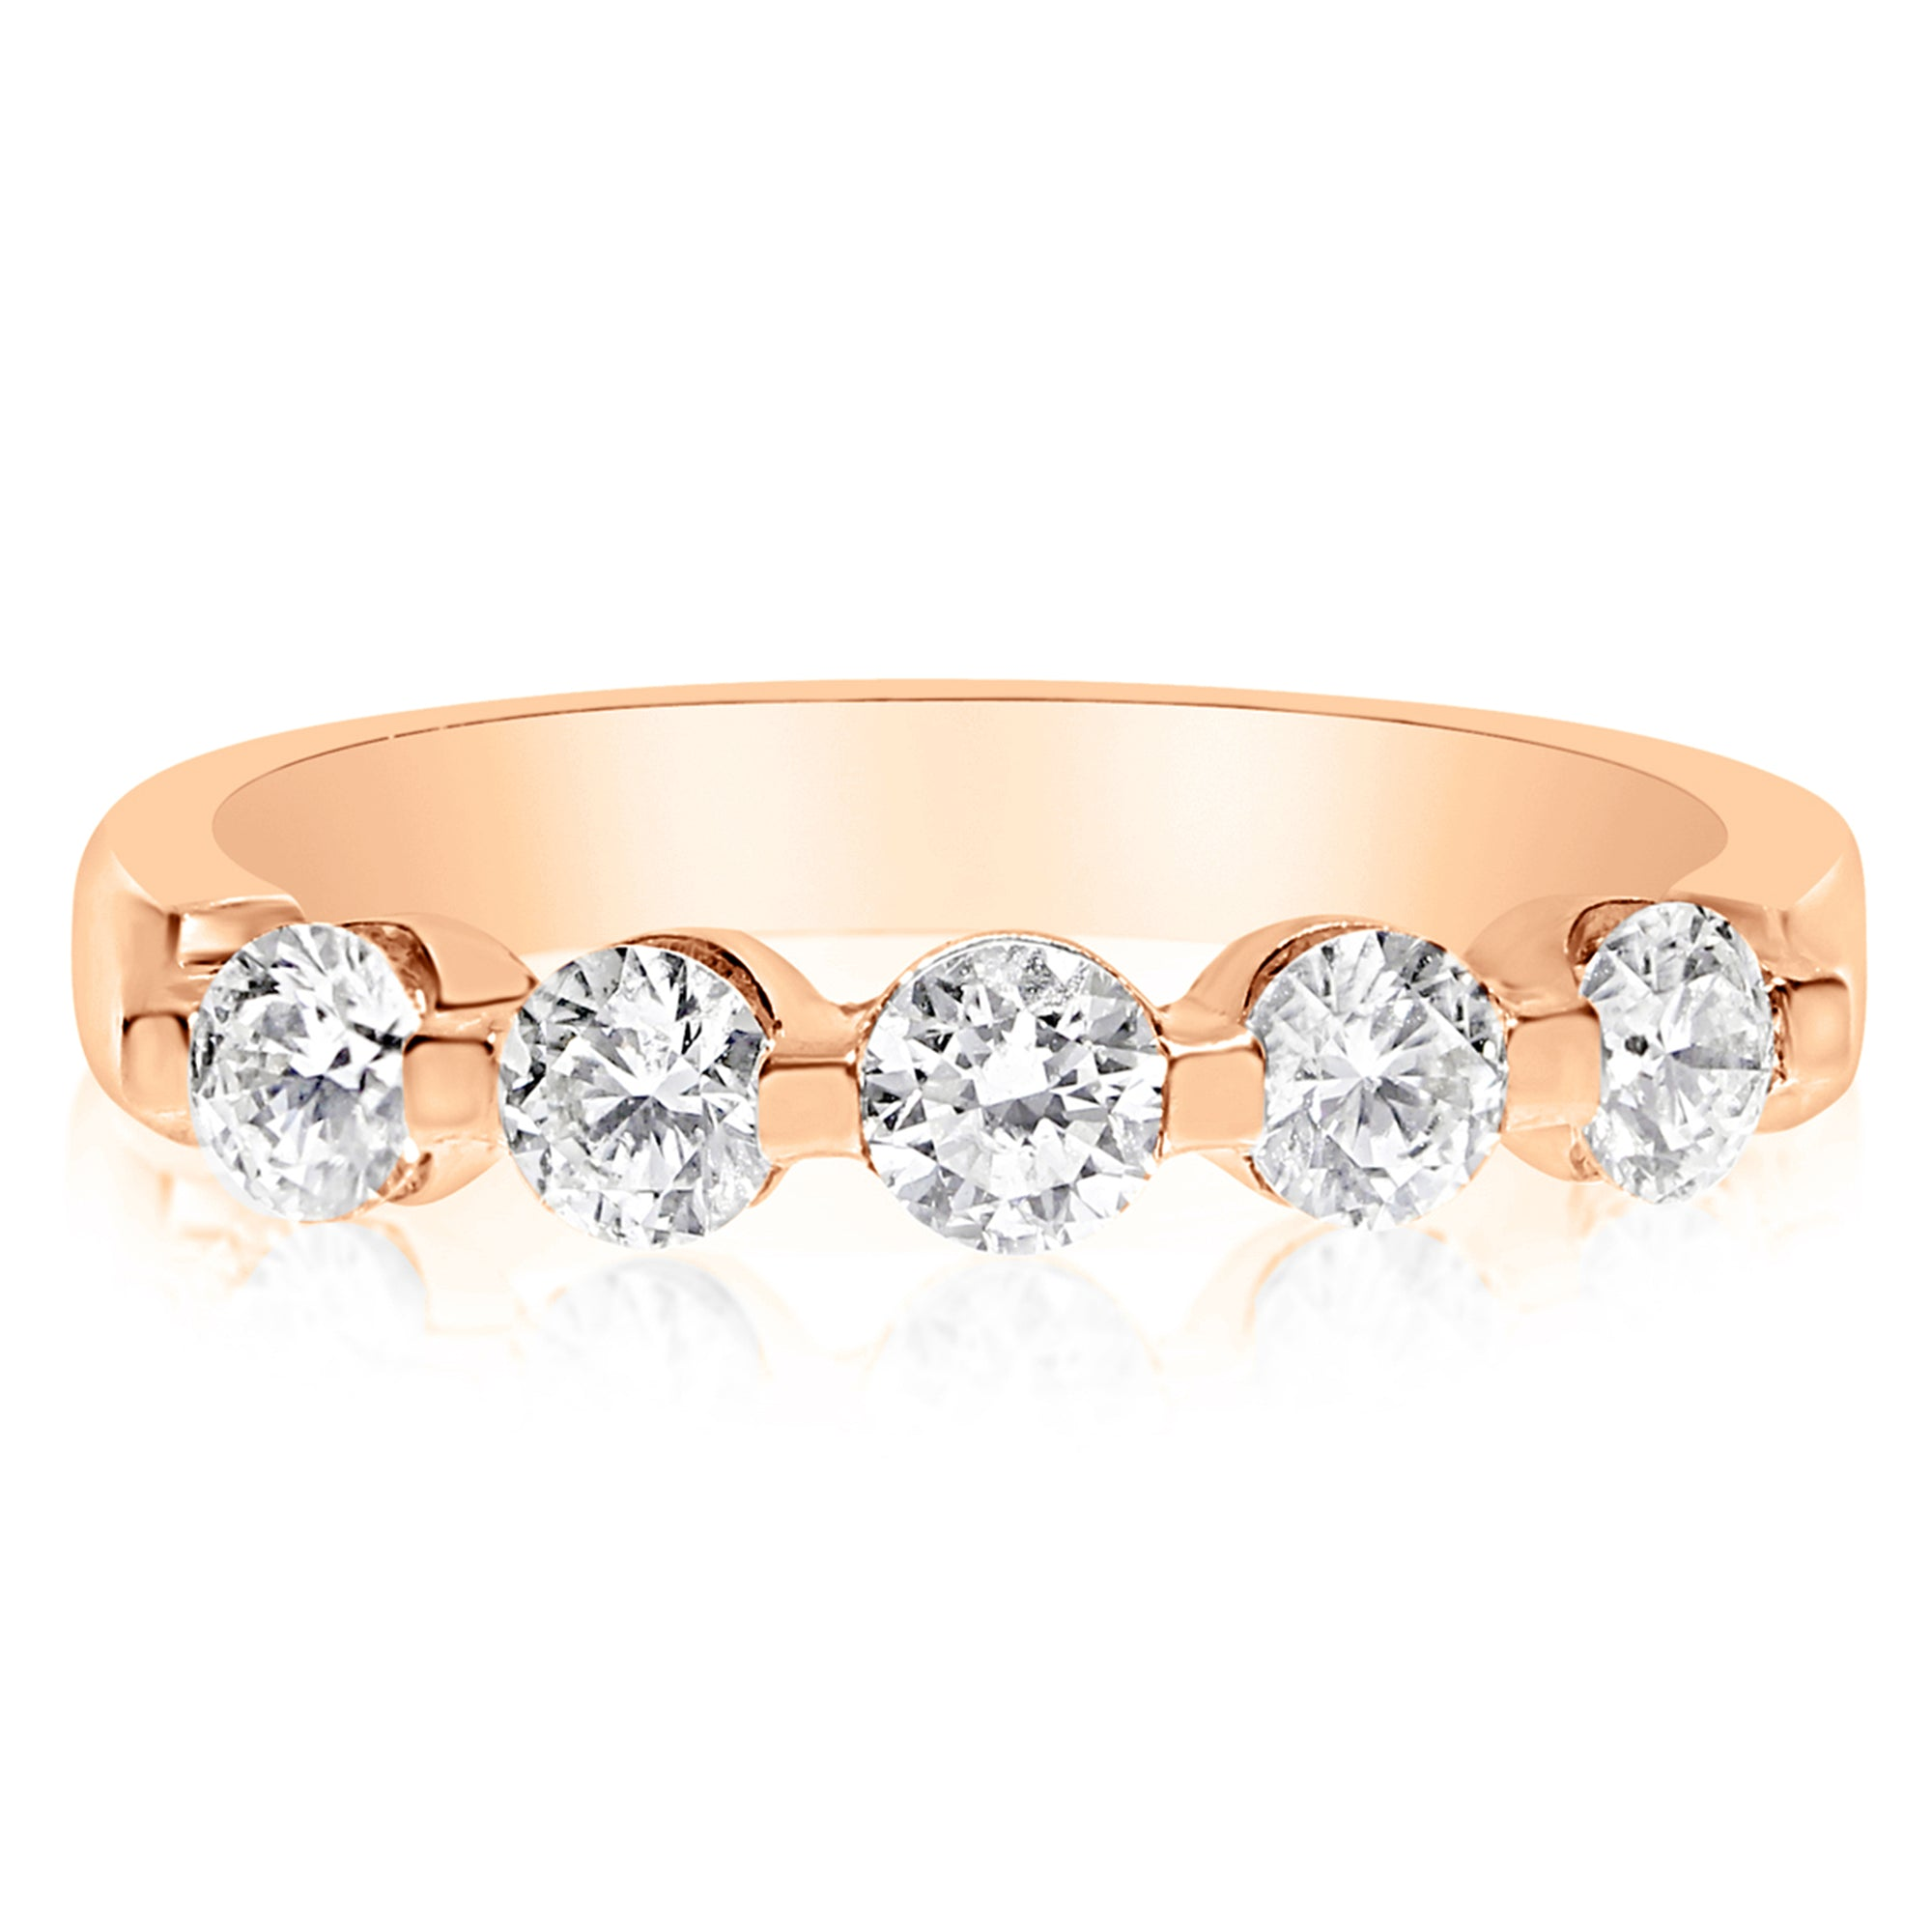 diamond her singautre wedding bands by white signature band laurence for collections gold graff in setting rose